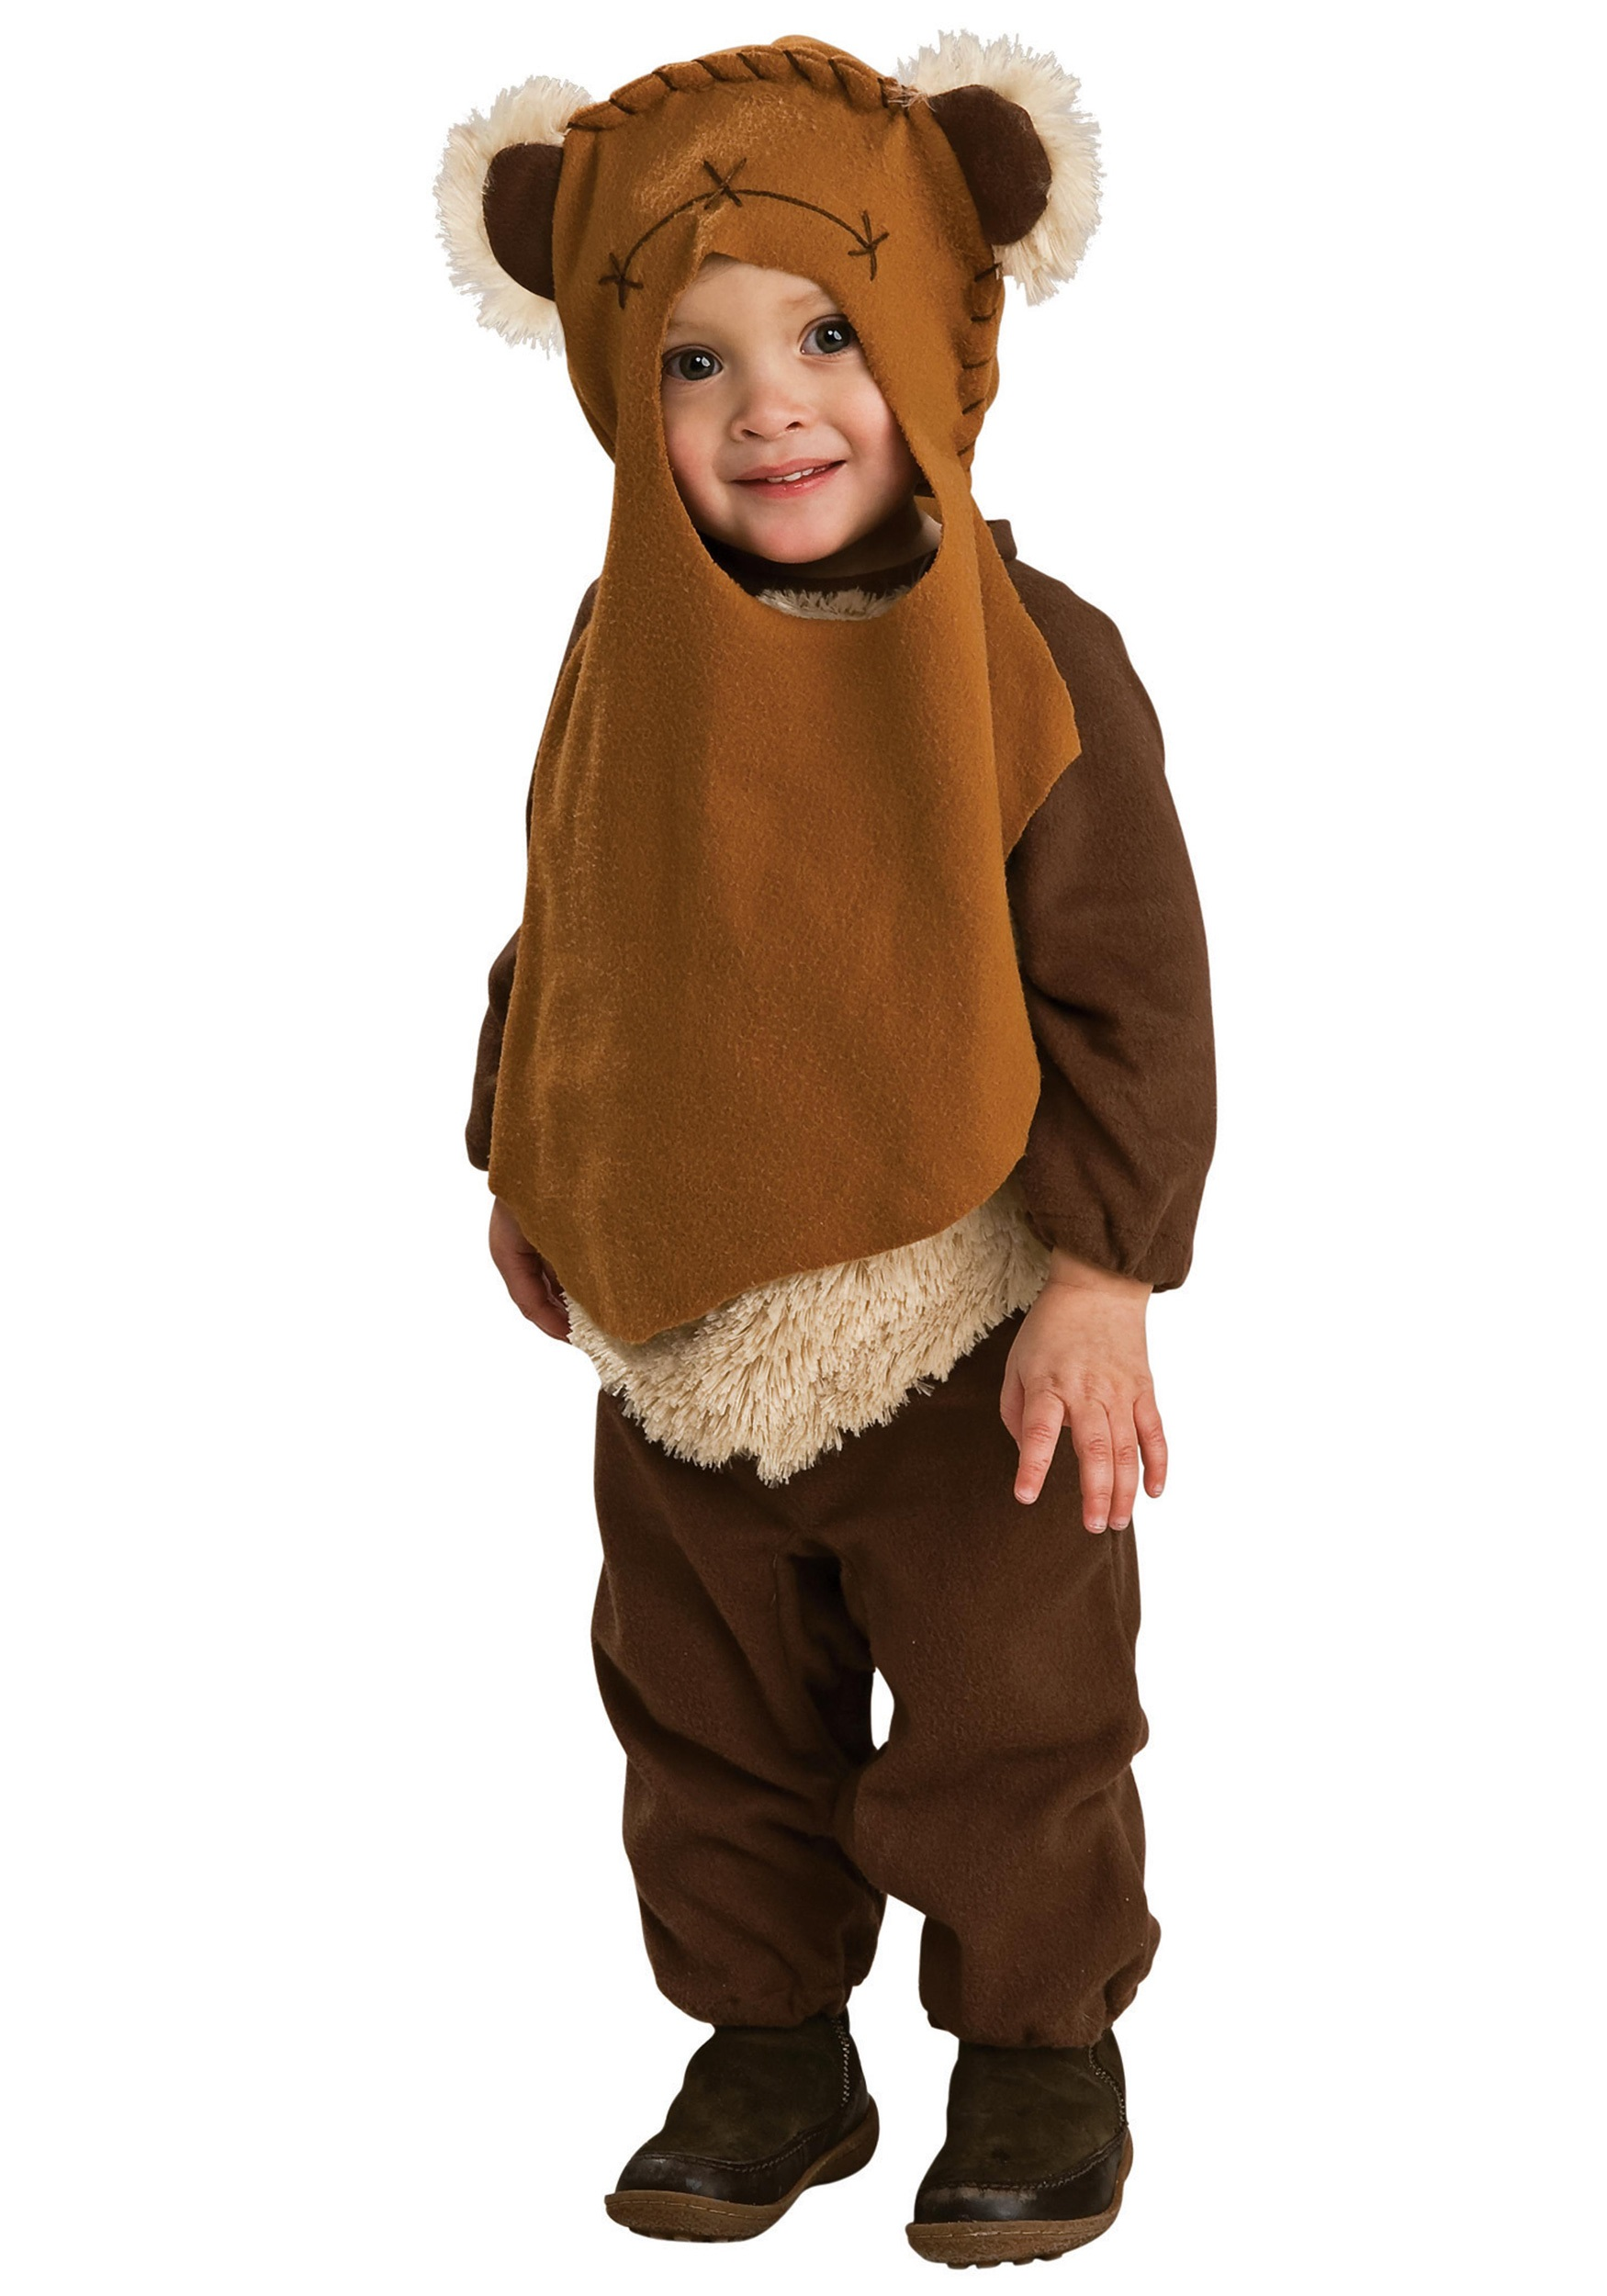 Star Wars Halloween Costumes.Ewok Toddler Costume